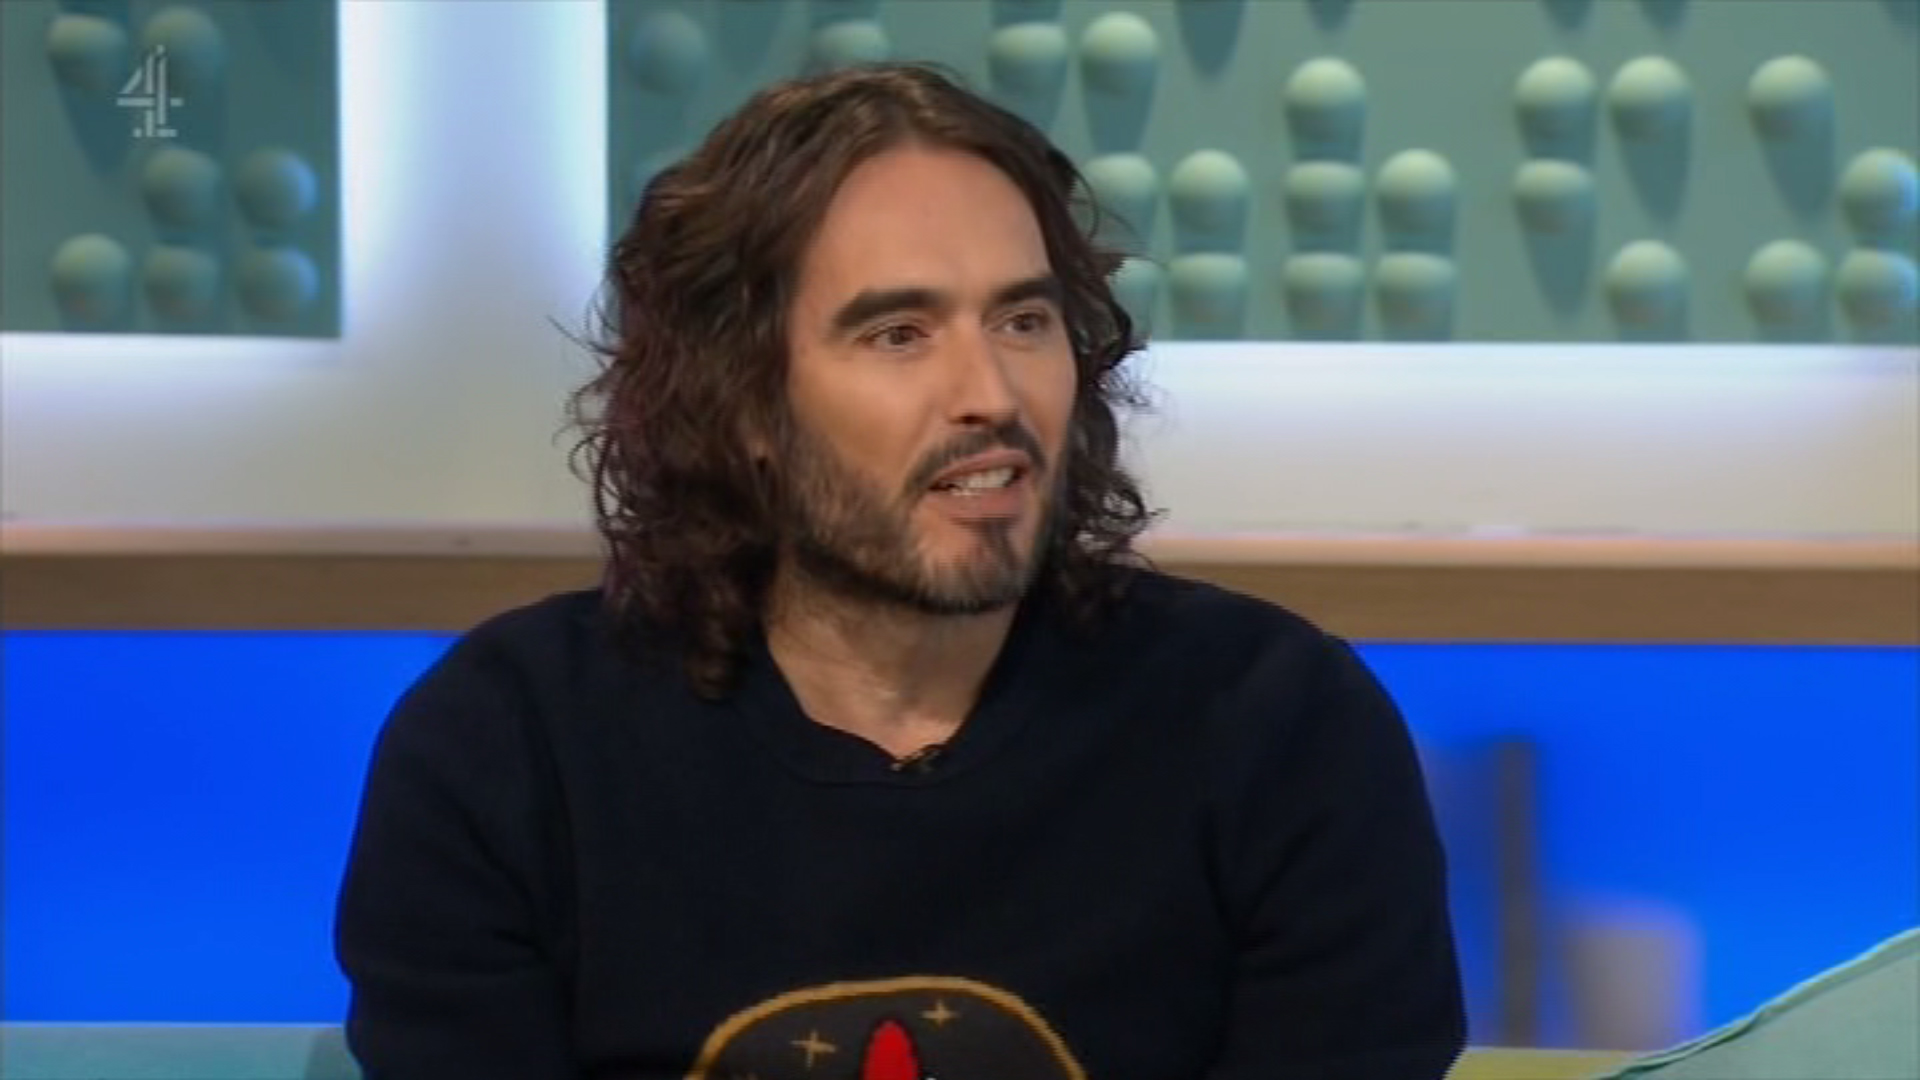 Russell Brand makes inappropriate 'sexual assault joke' on live TV